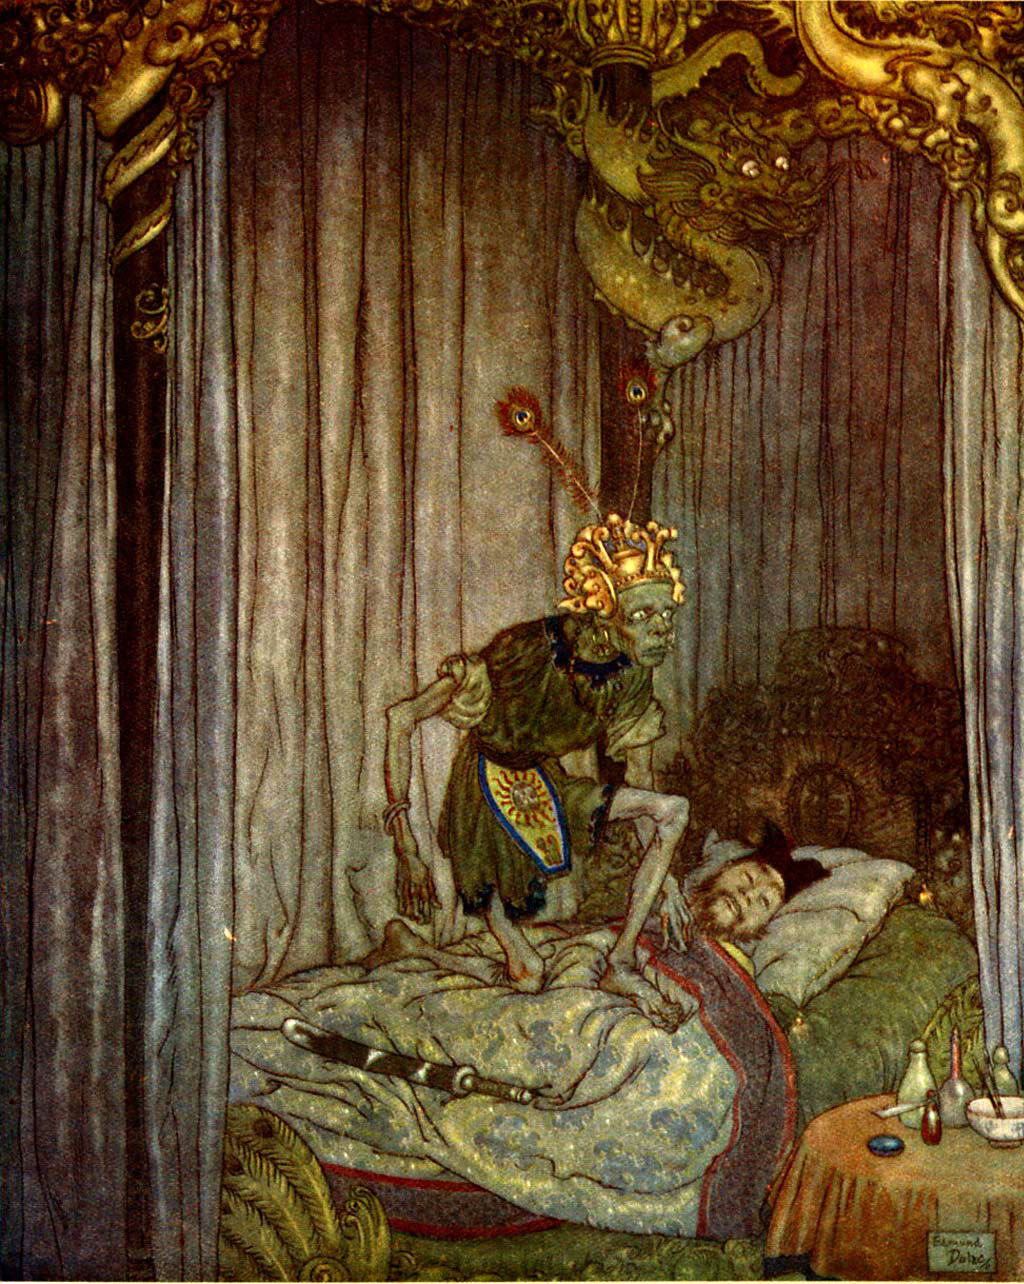 edmond dulac illustration